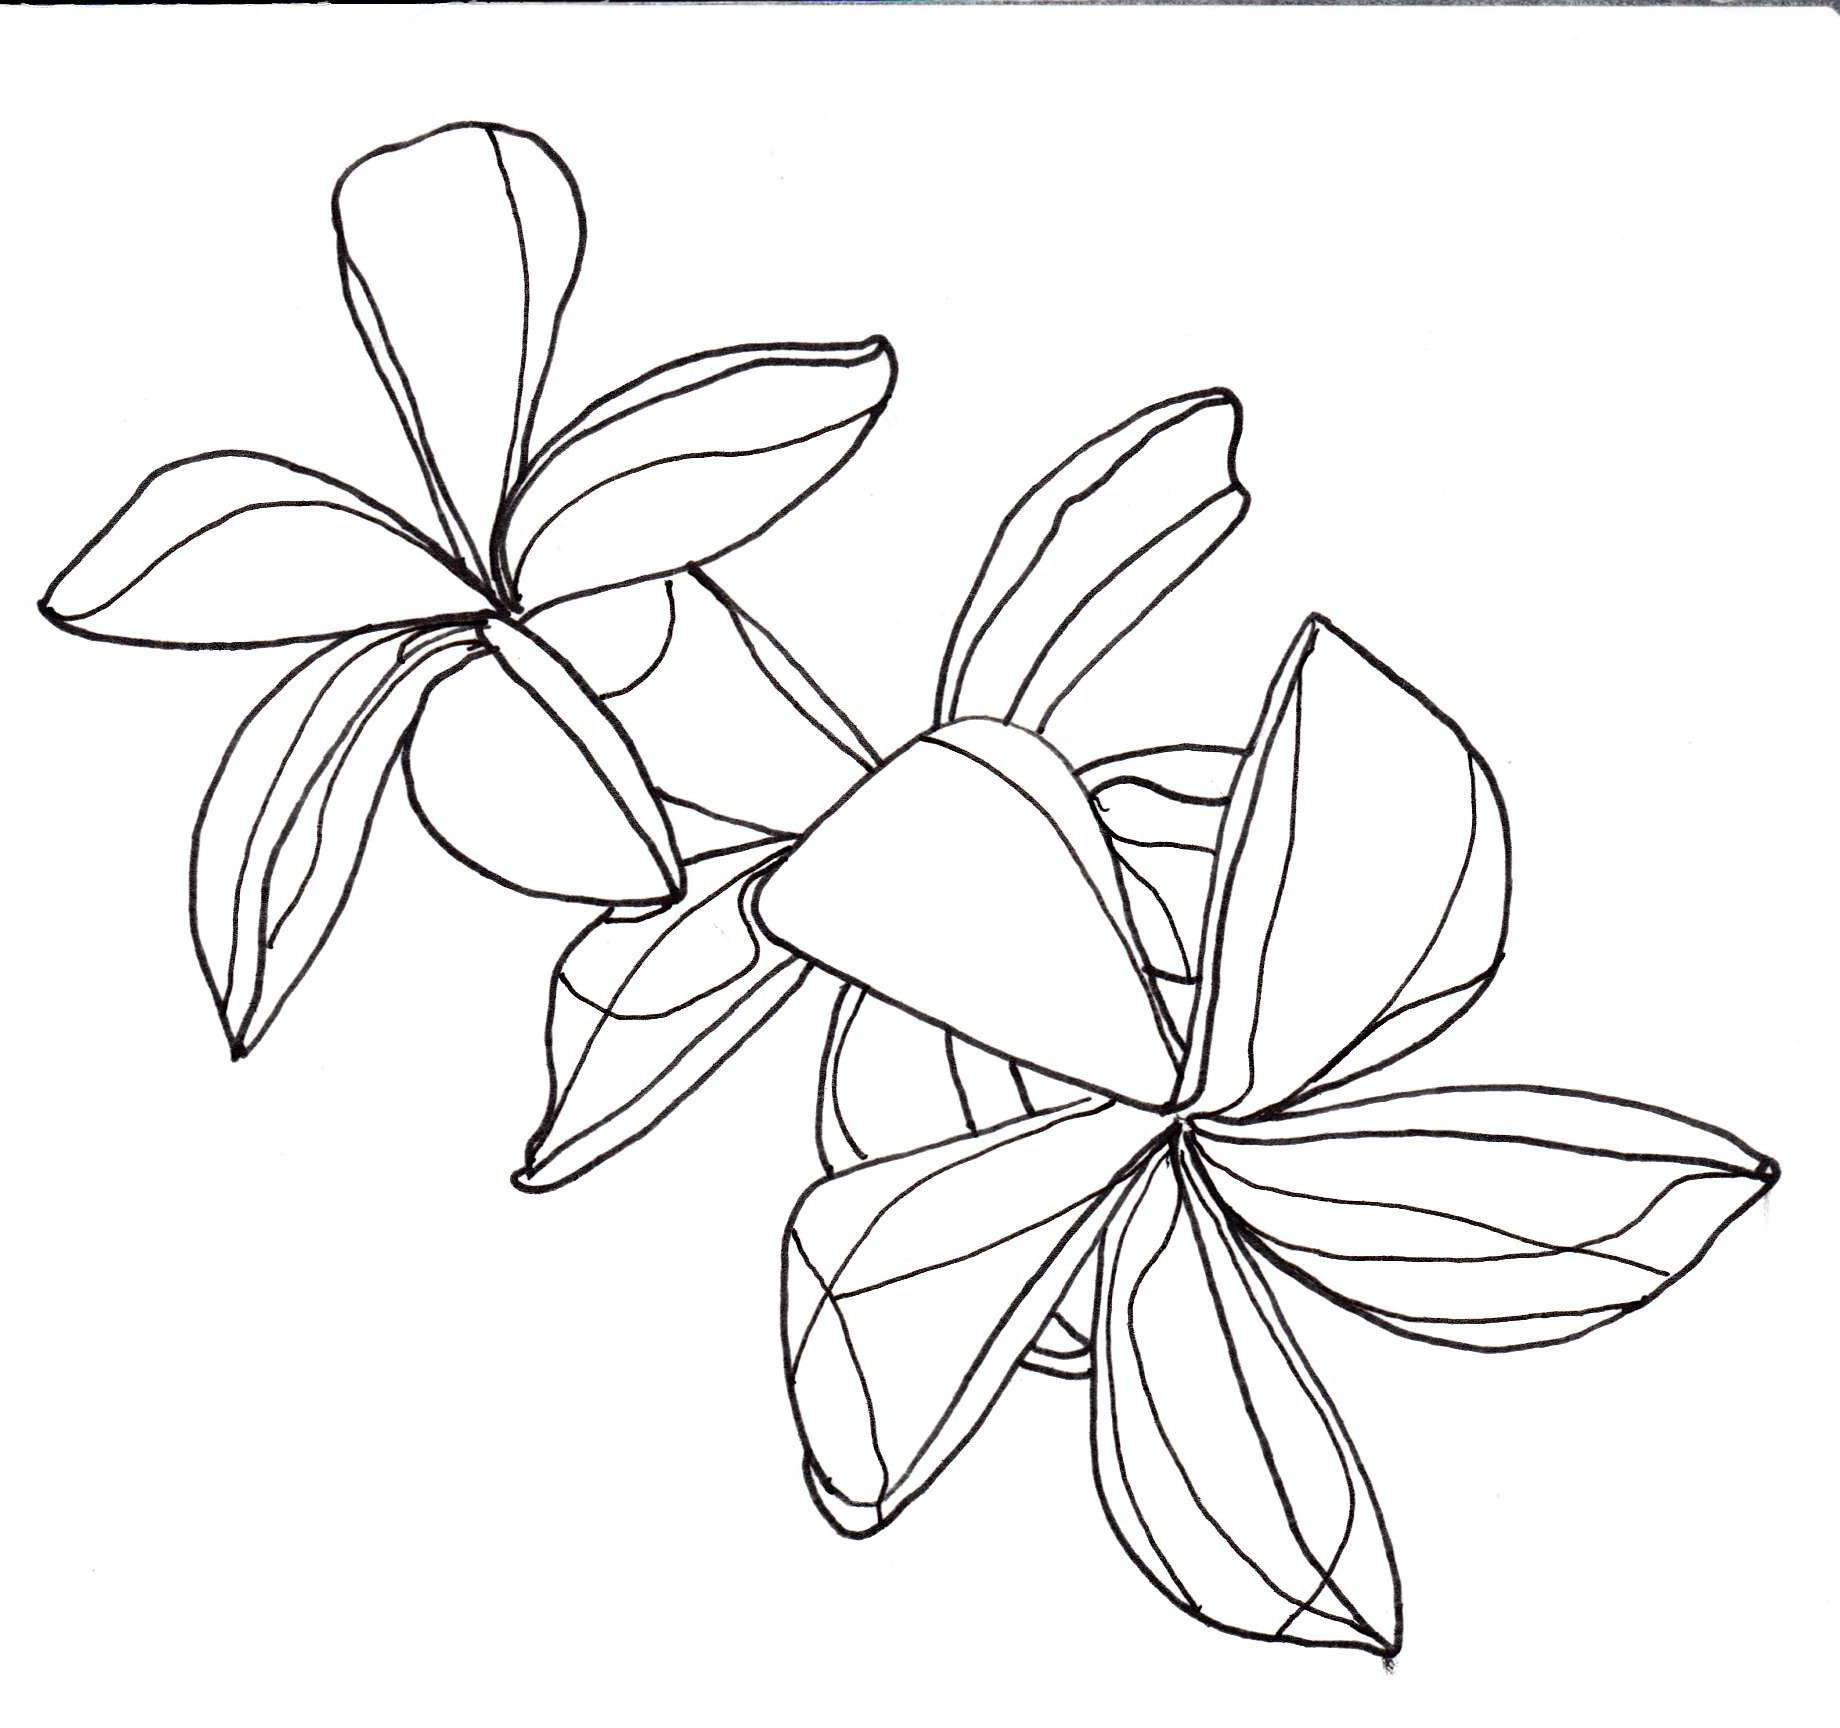 Line Drawing Flowers Plumeria Flower Line Drawings Flower Drawing Simple Line Drawings